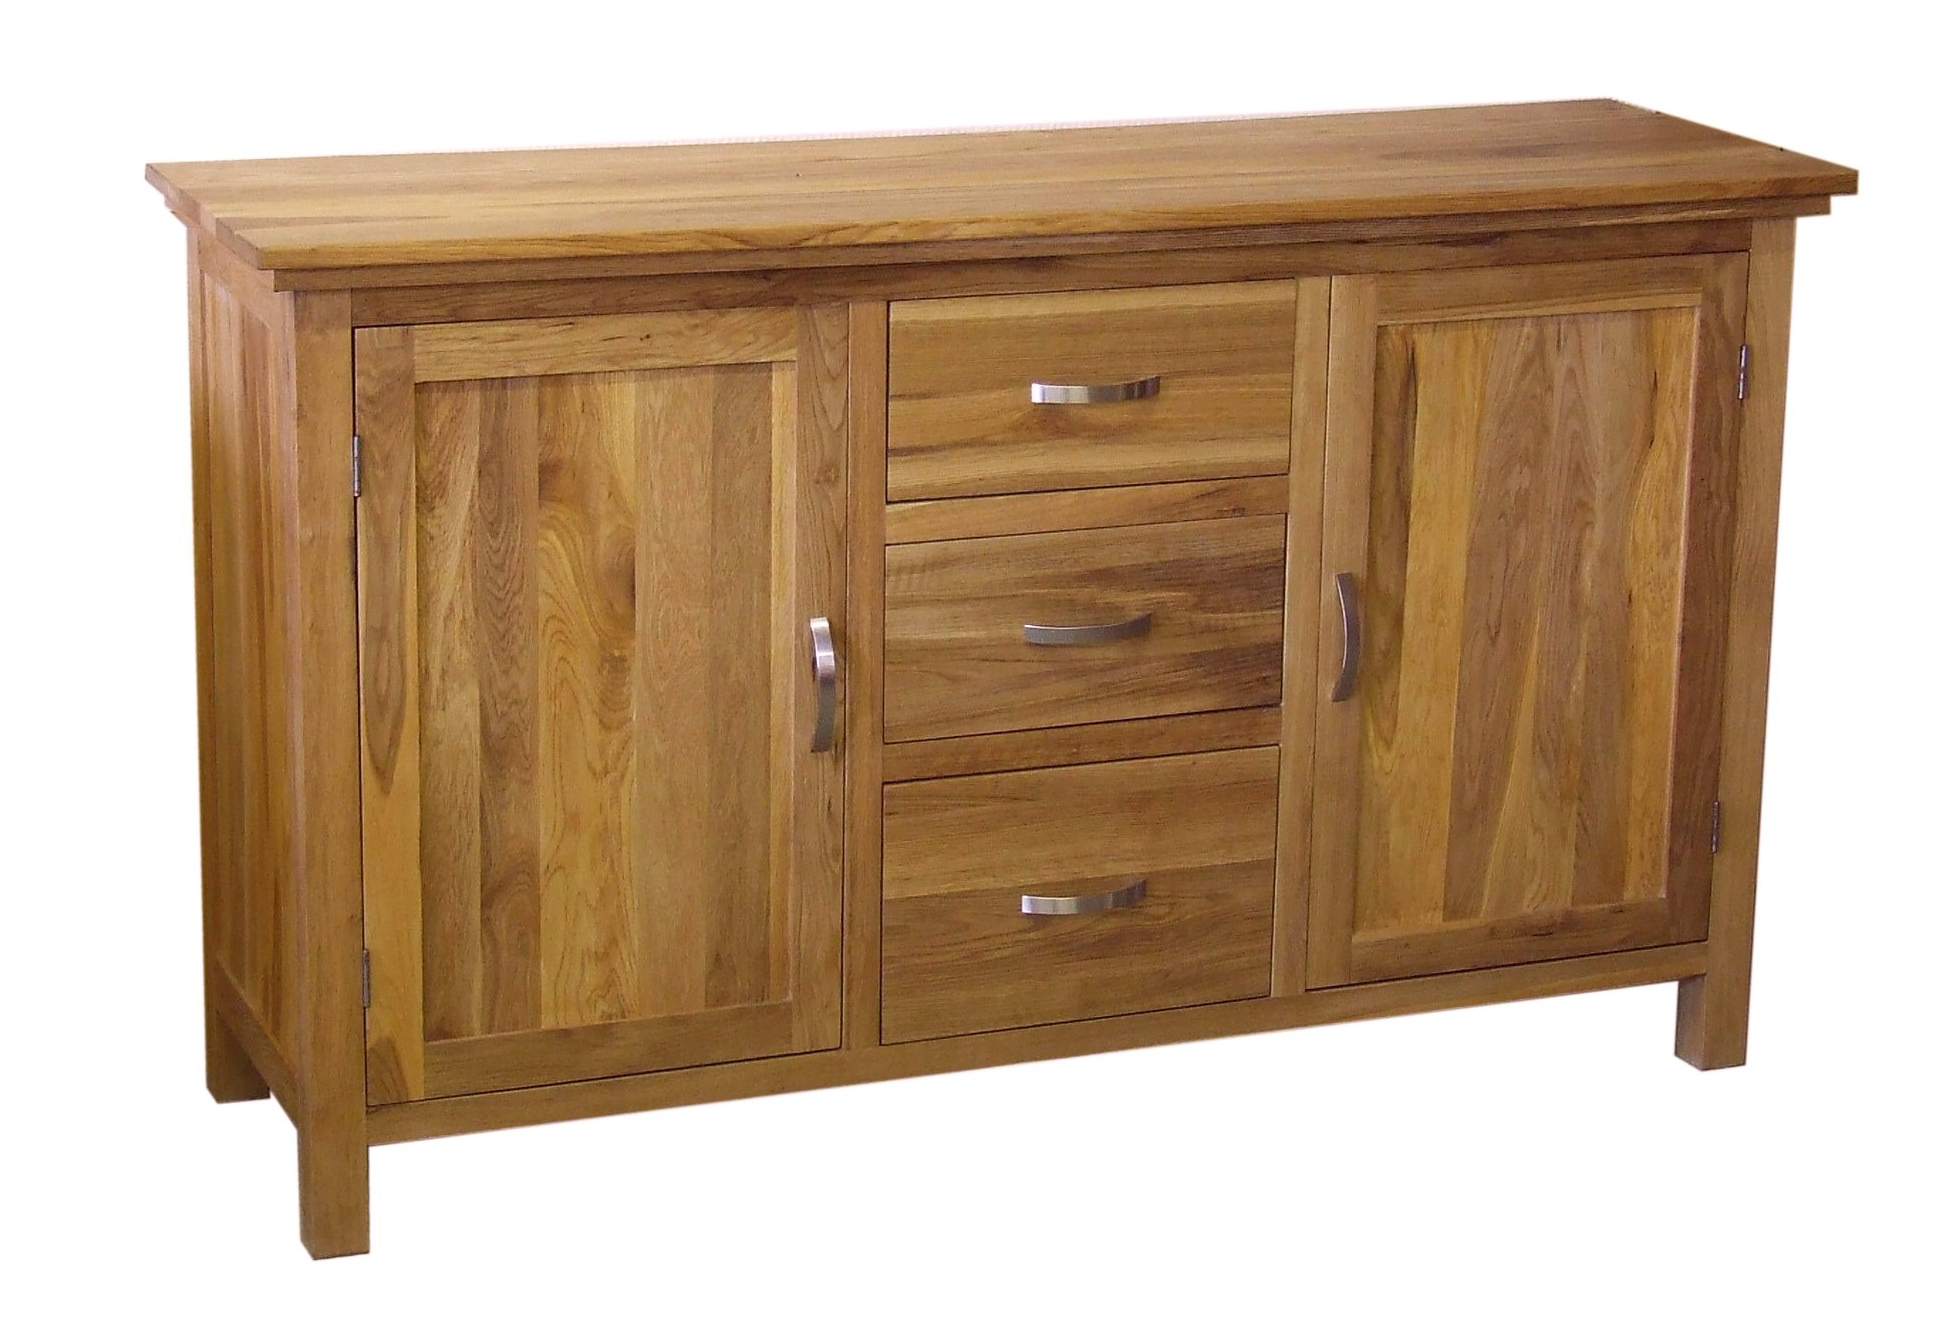 Antique Wooden Sideboards ~ Solid oak sideboard is your first choice living room